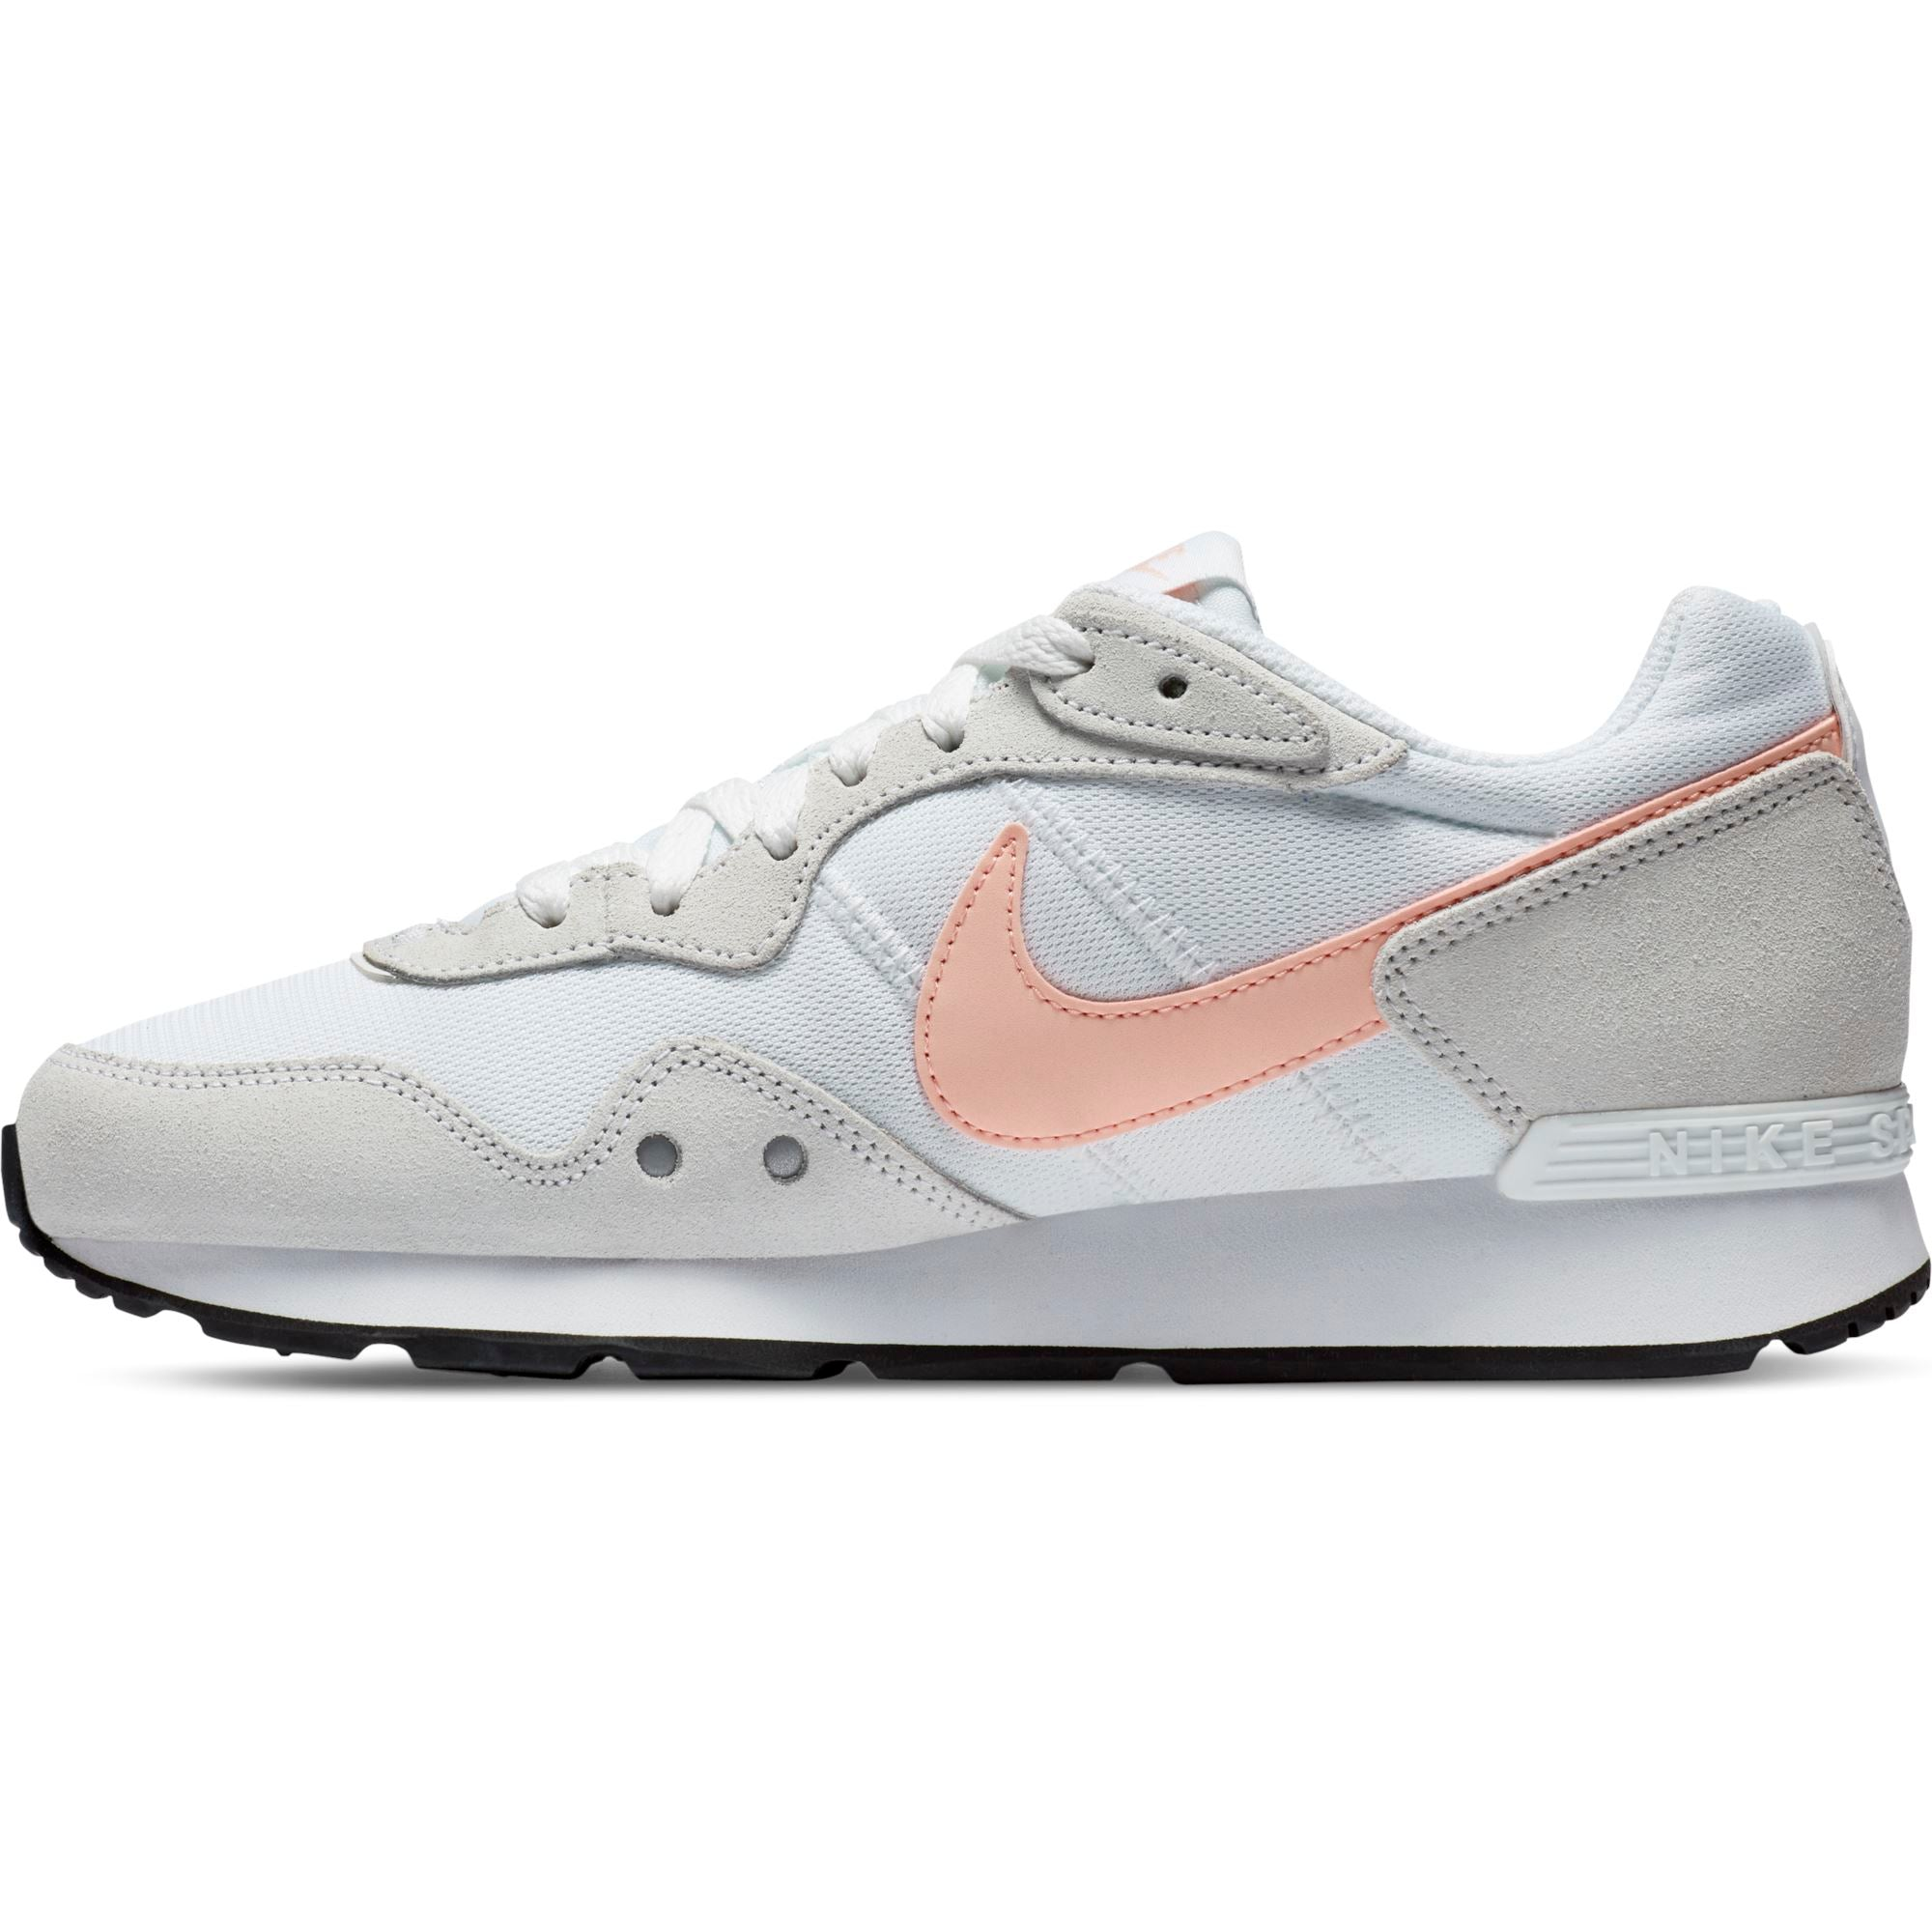 Nike Womens Venture Runner - White/Washed Coral-Black SP-Footwear-Womens Nike